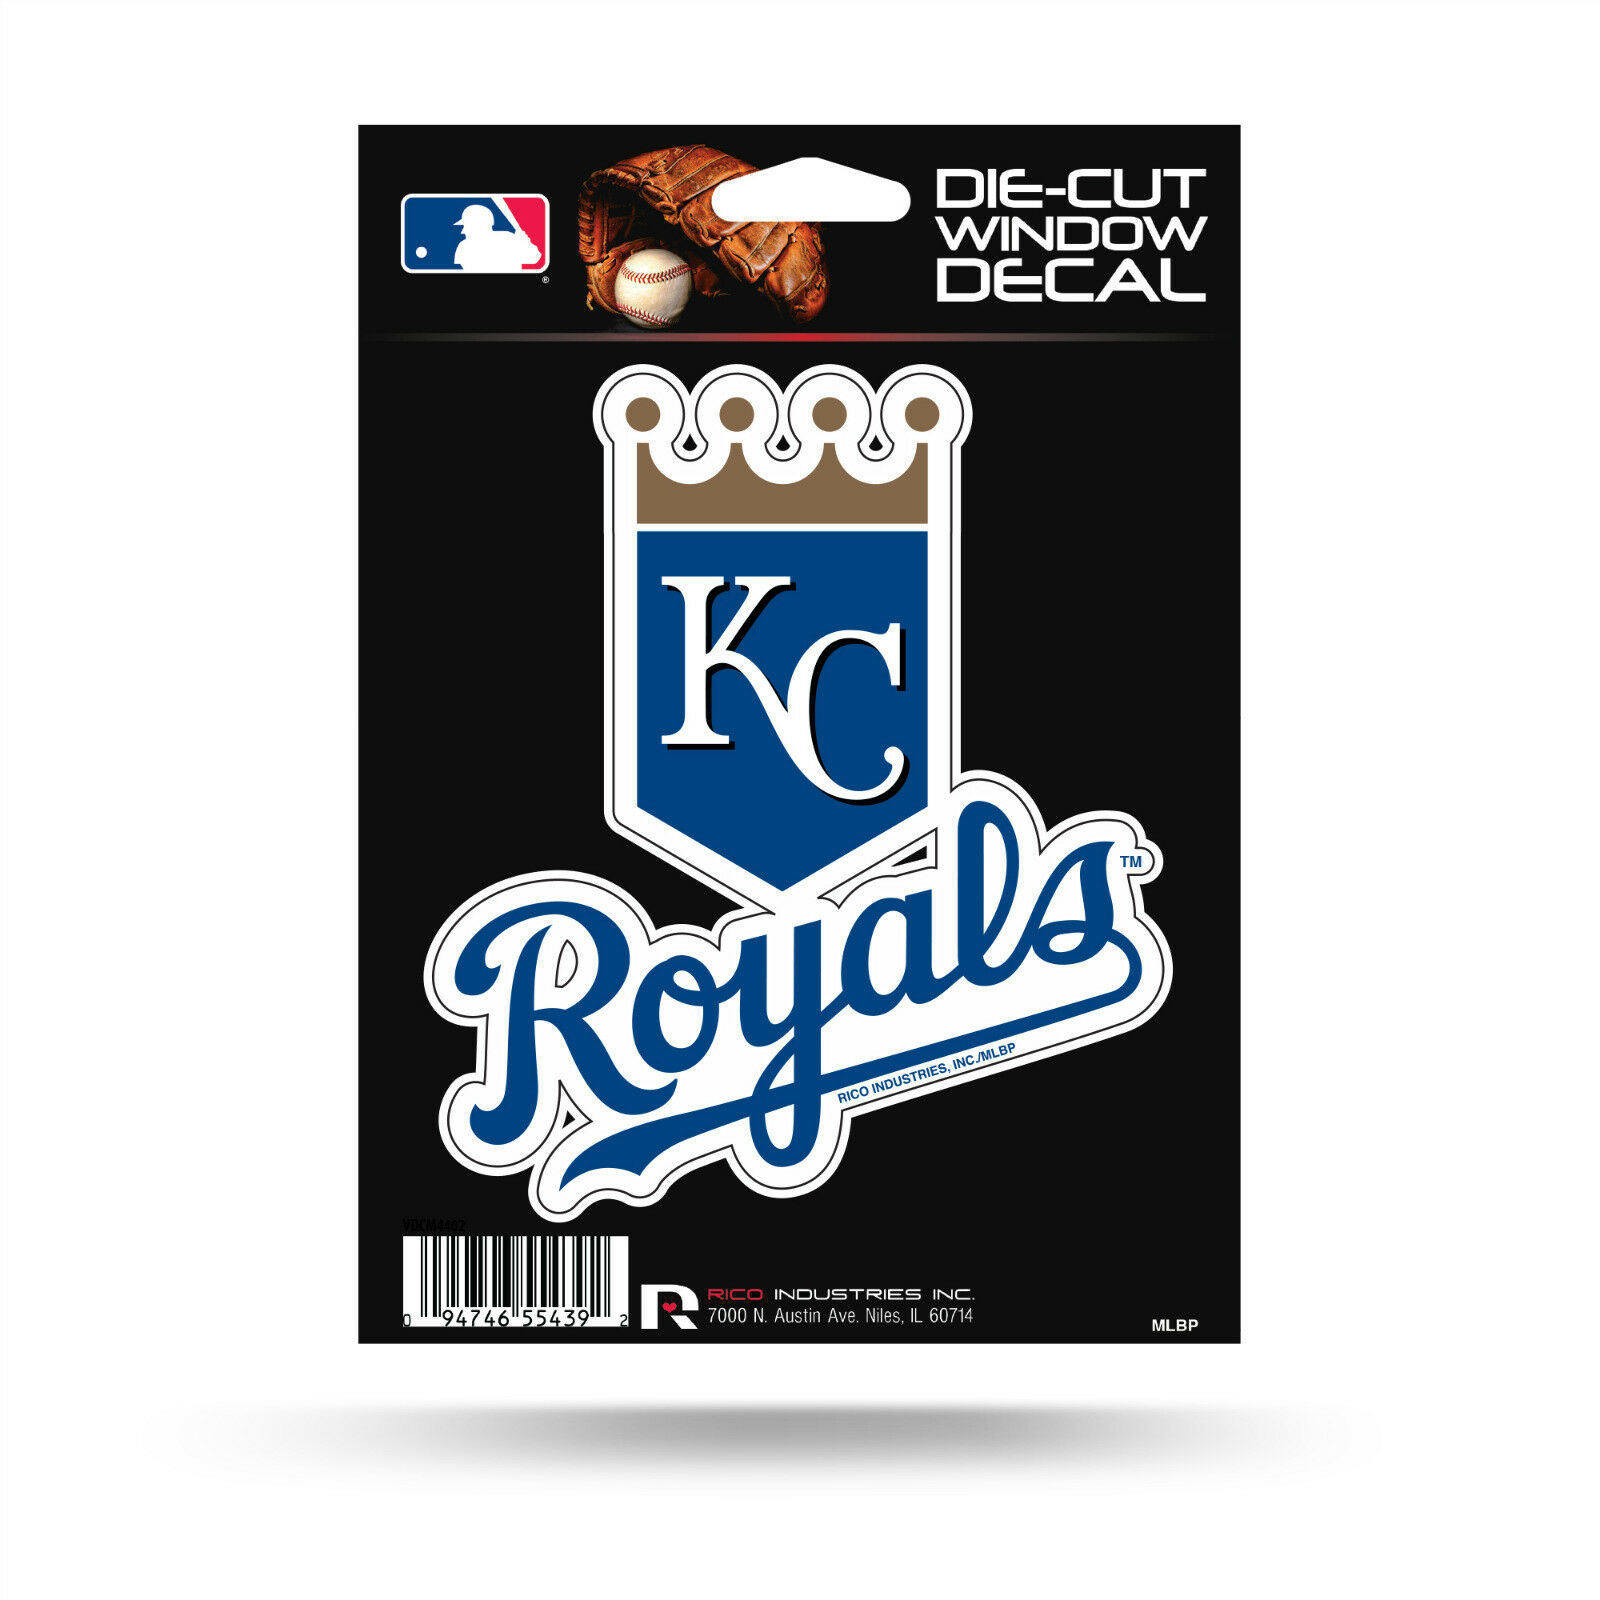 Kansas City Royals Diecut Window Decal By Rico Industries EBay - Die cut window decals